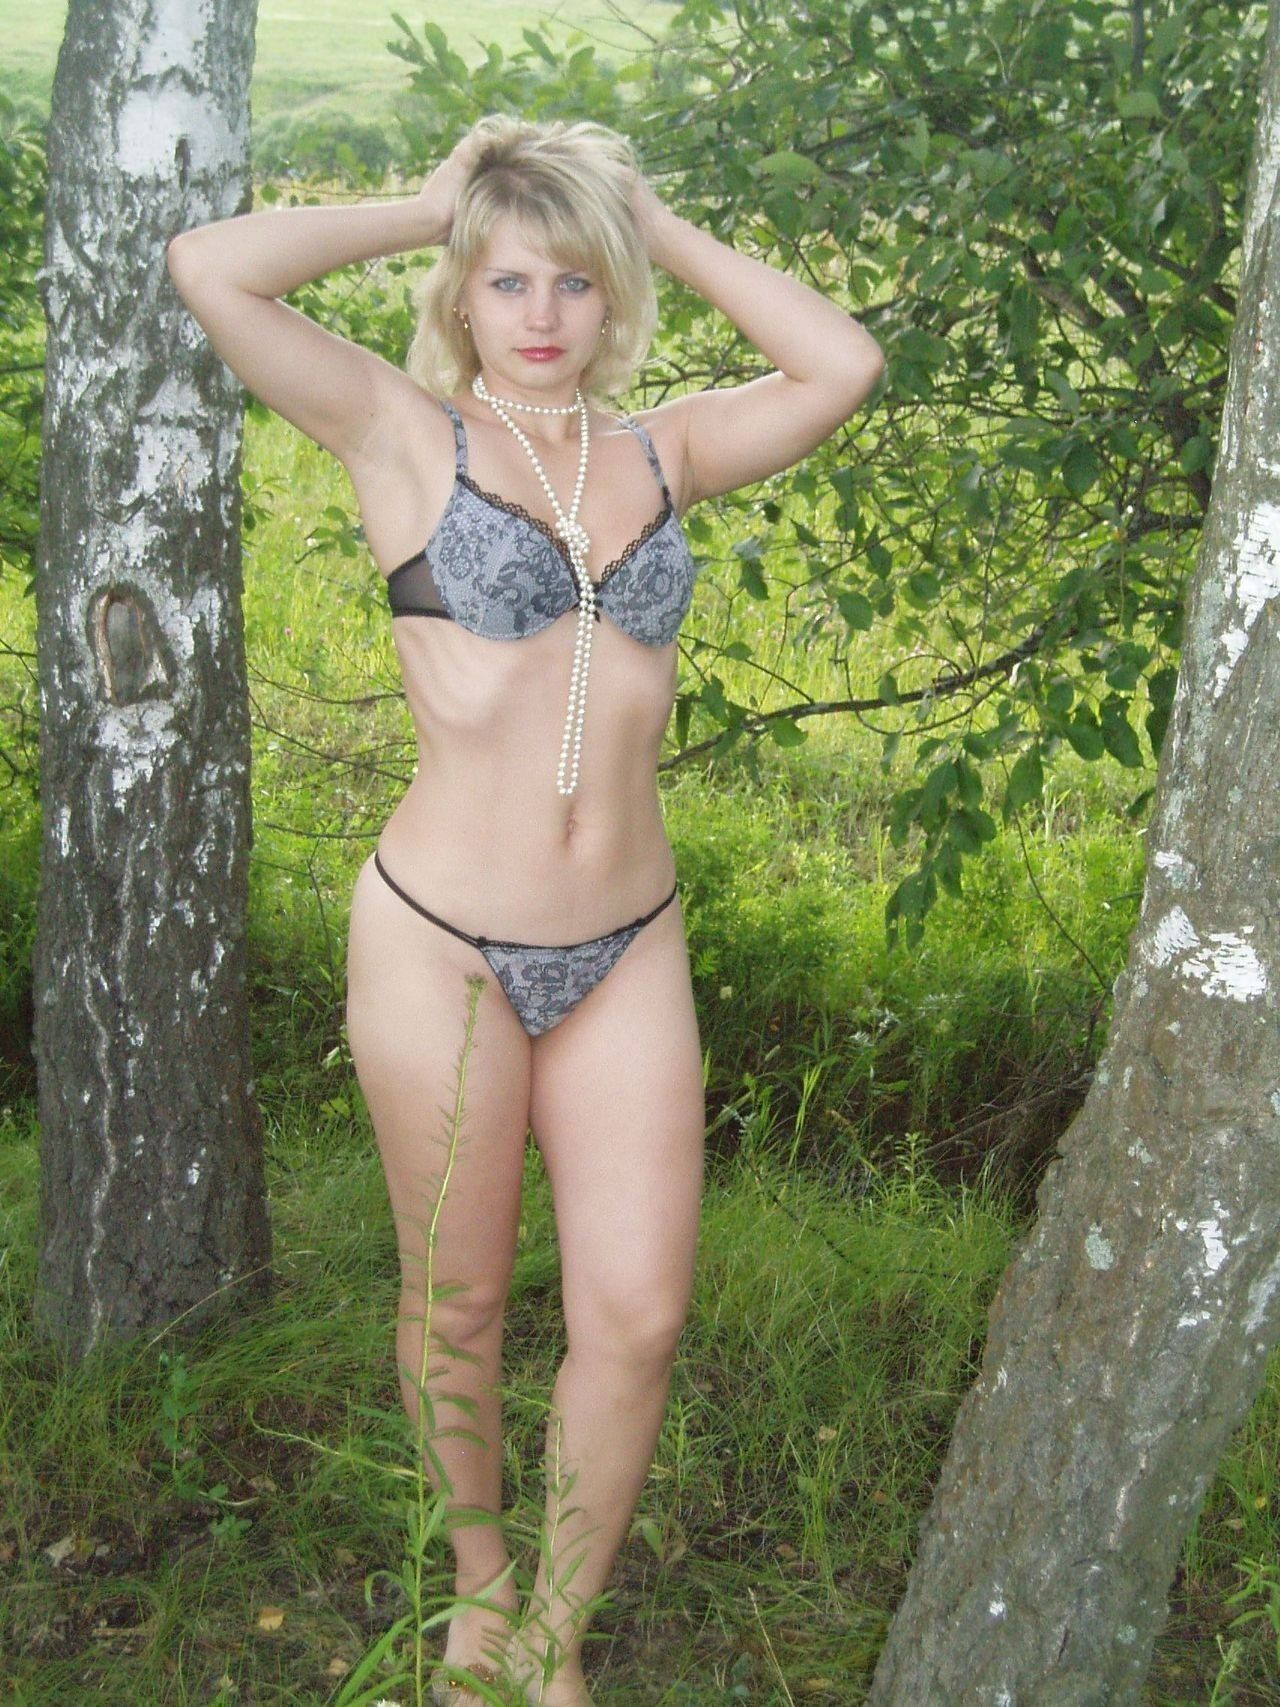 sexiest online dating pictures